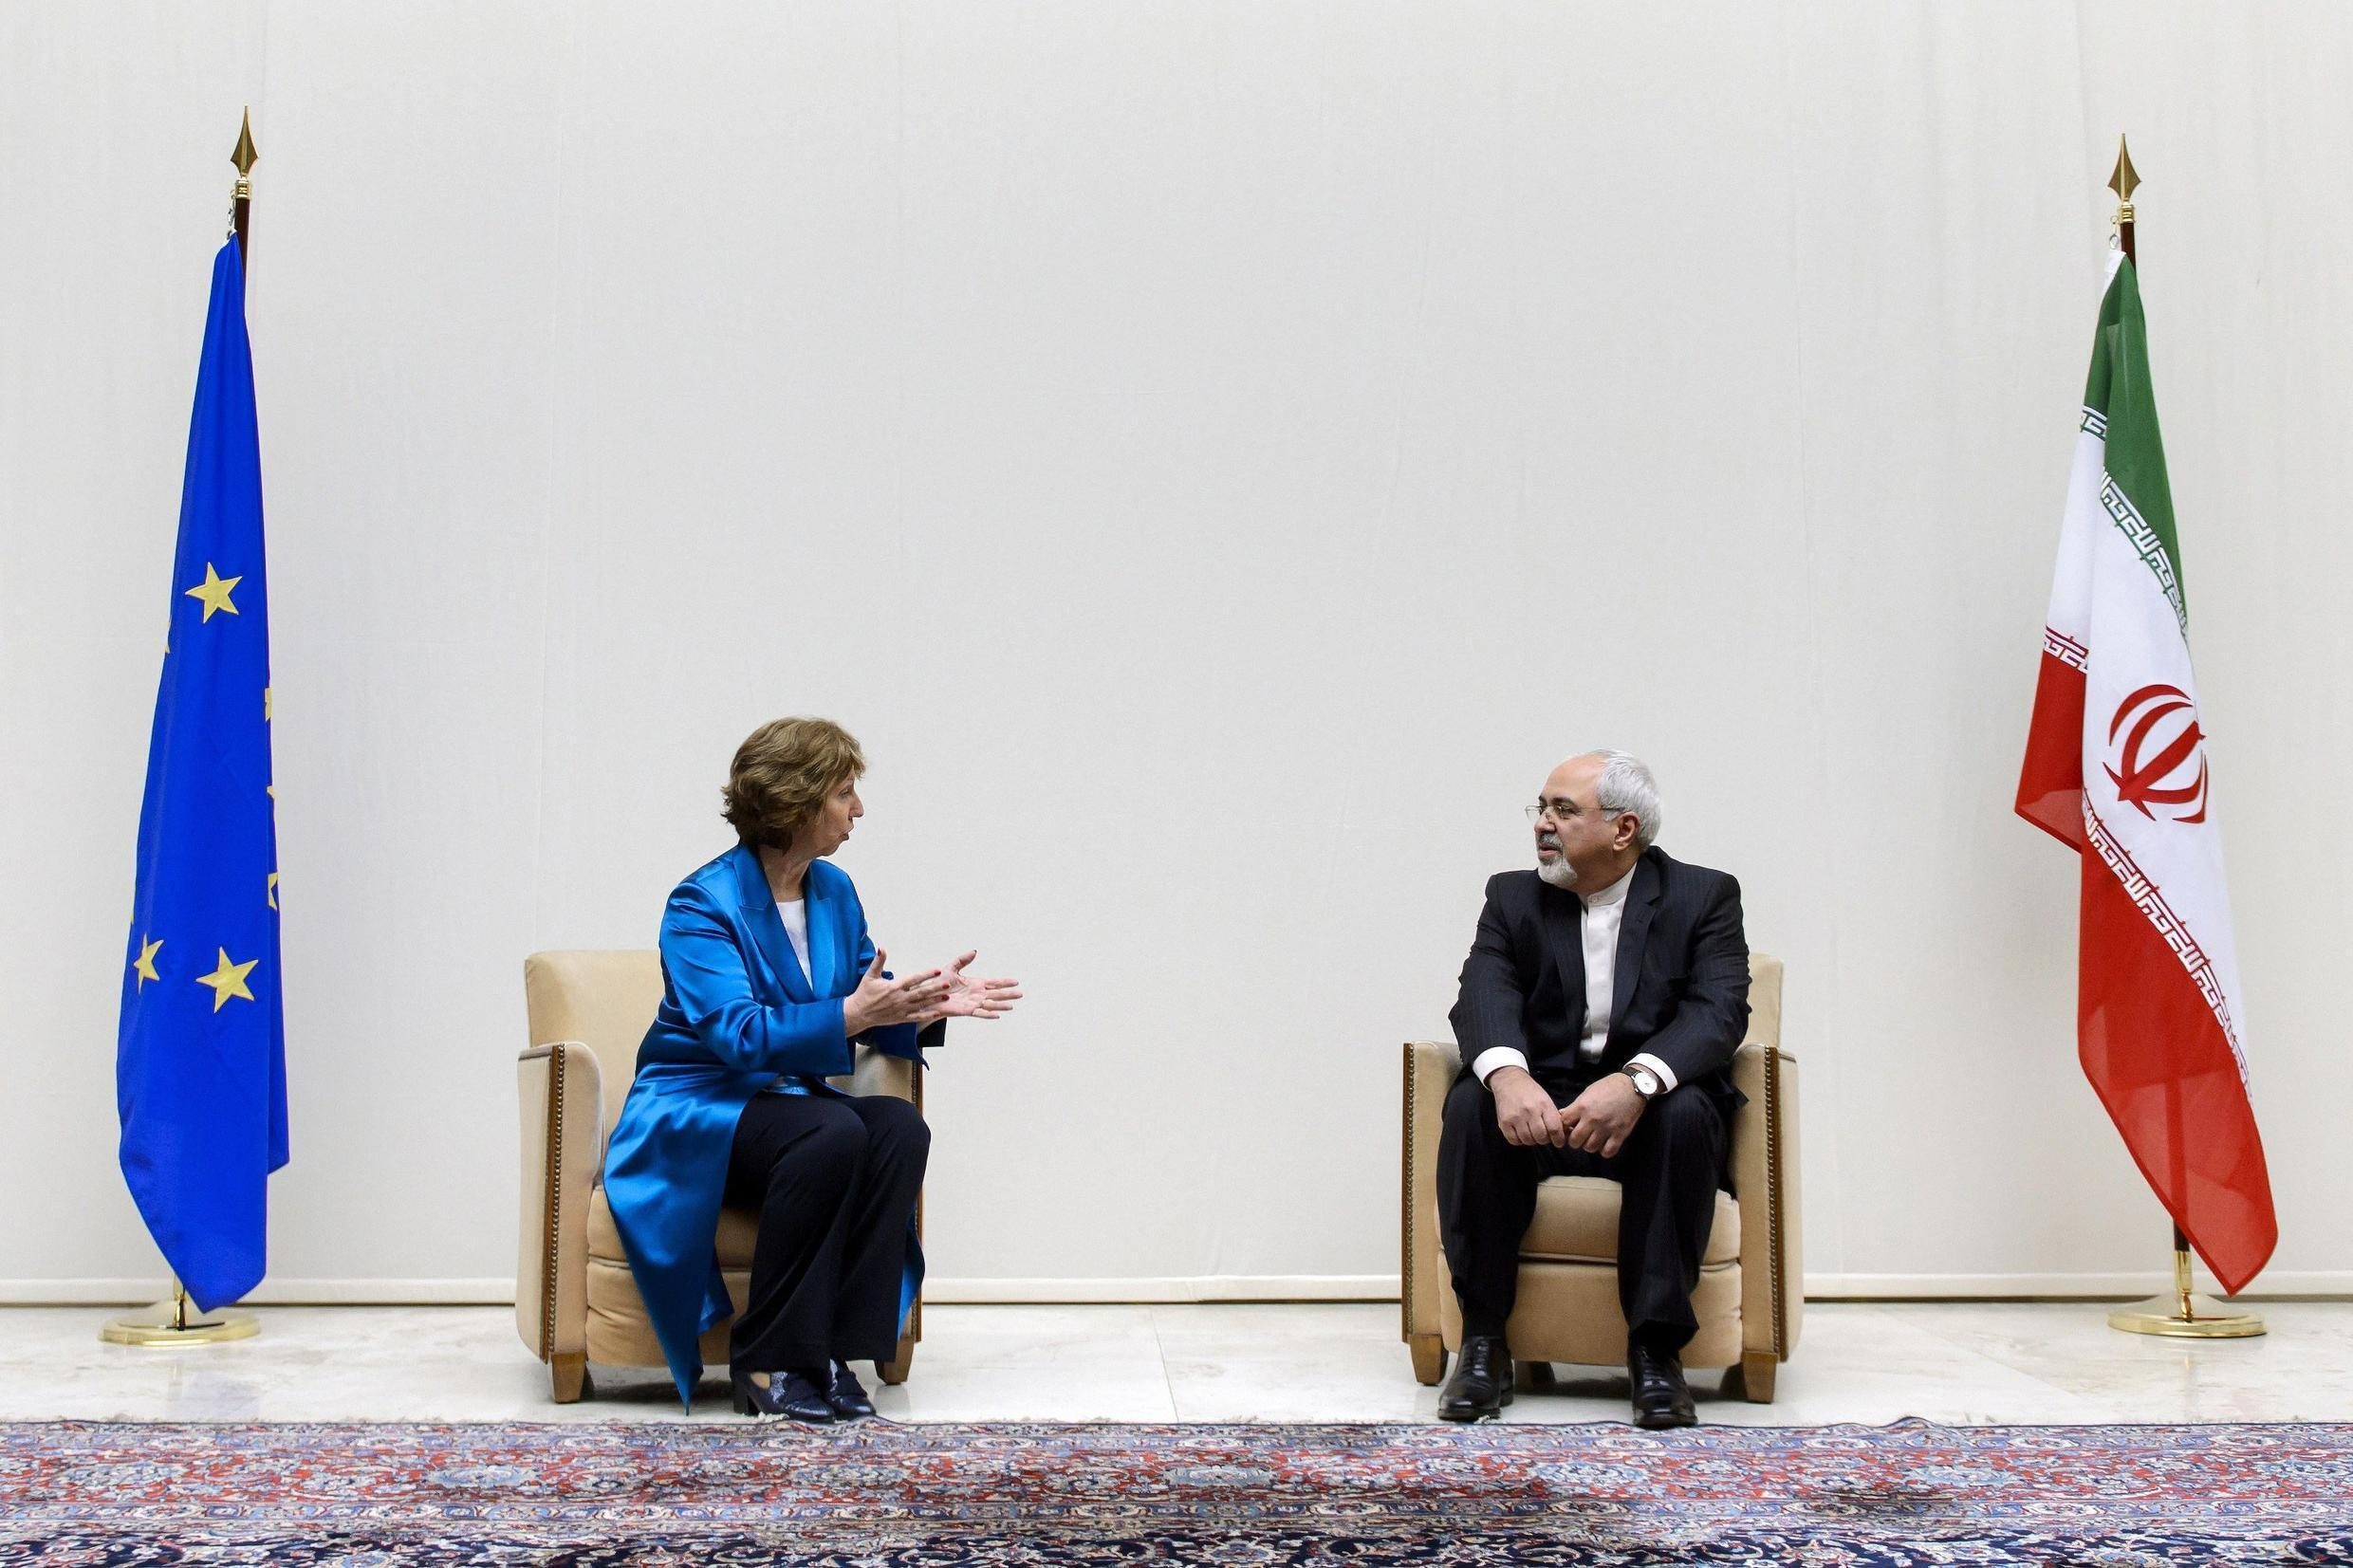 European Union foreign policy chief Catherine Ashton speaks with Iranian Foreign Minister Mohammad Javad Zarif, Geneva, 15 October, 2013